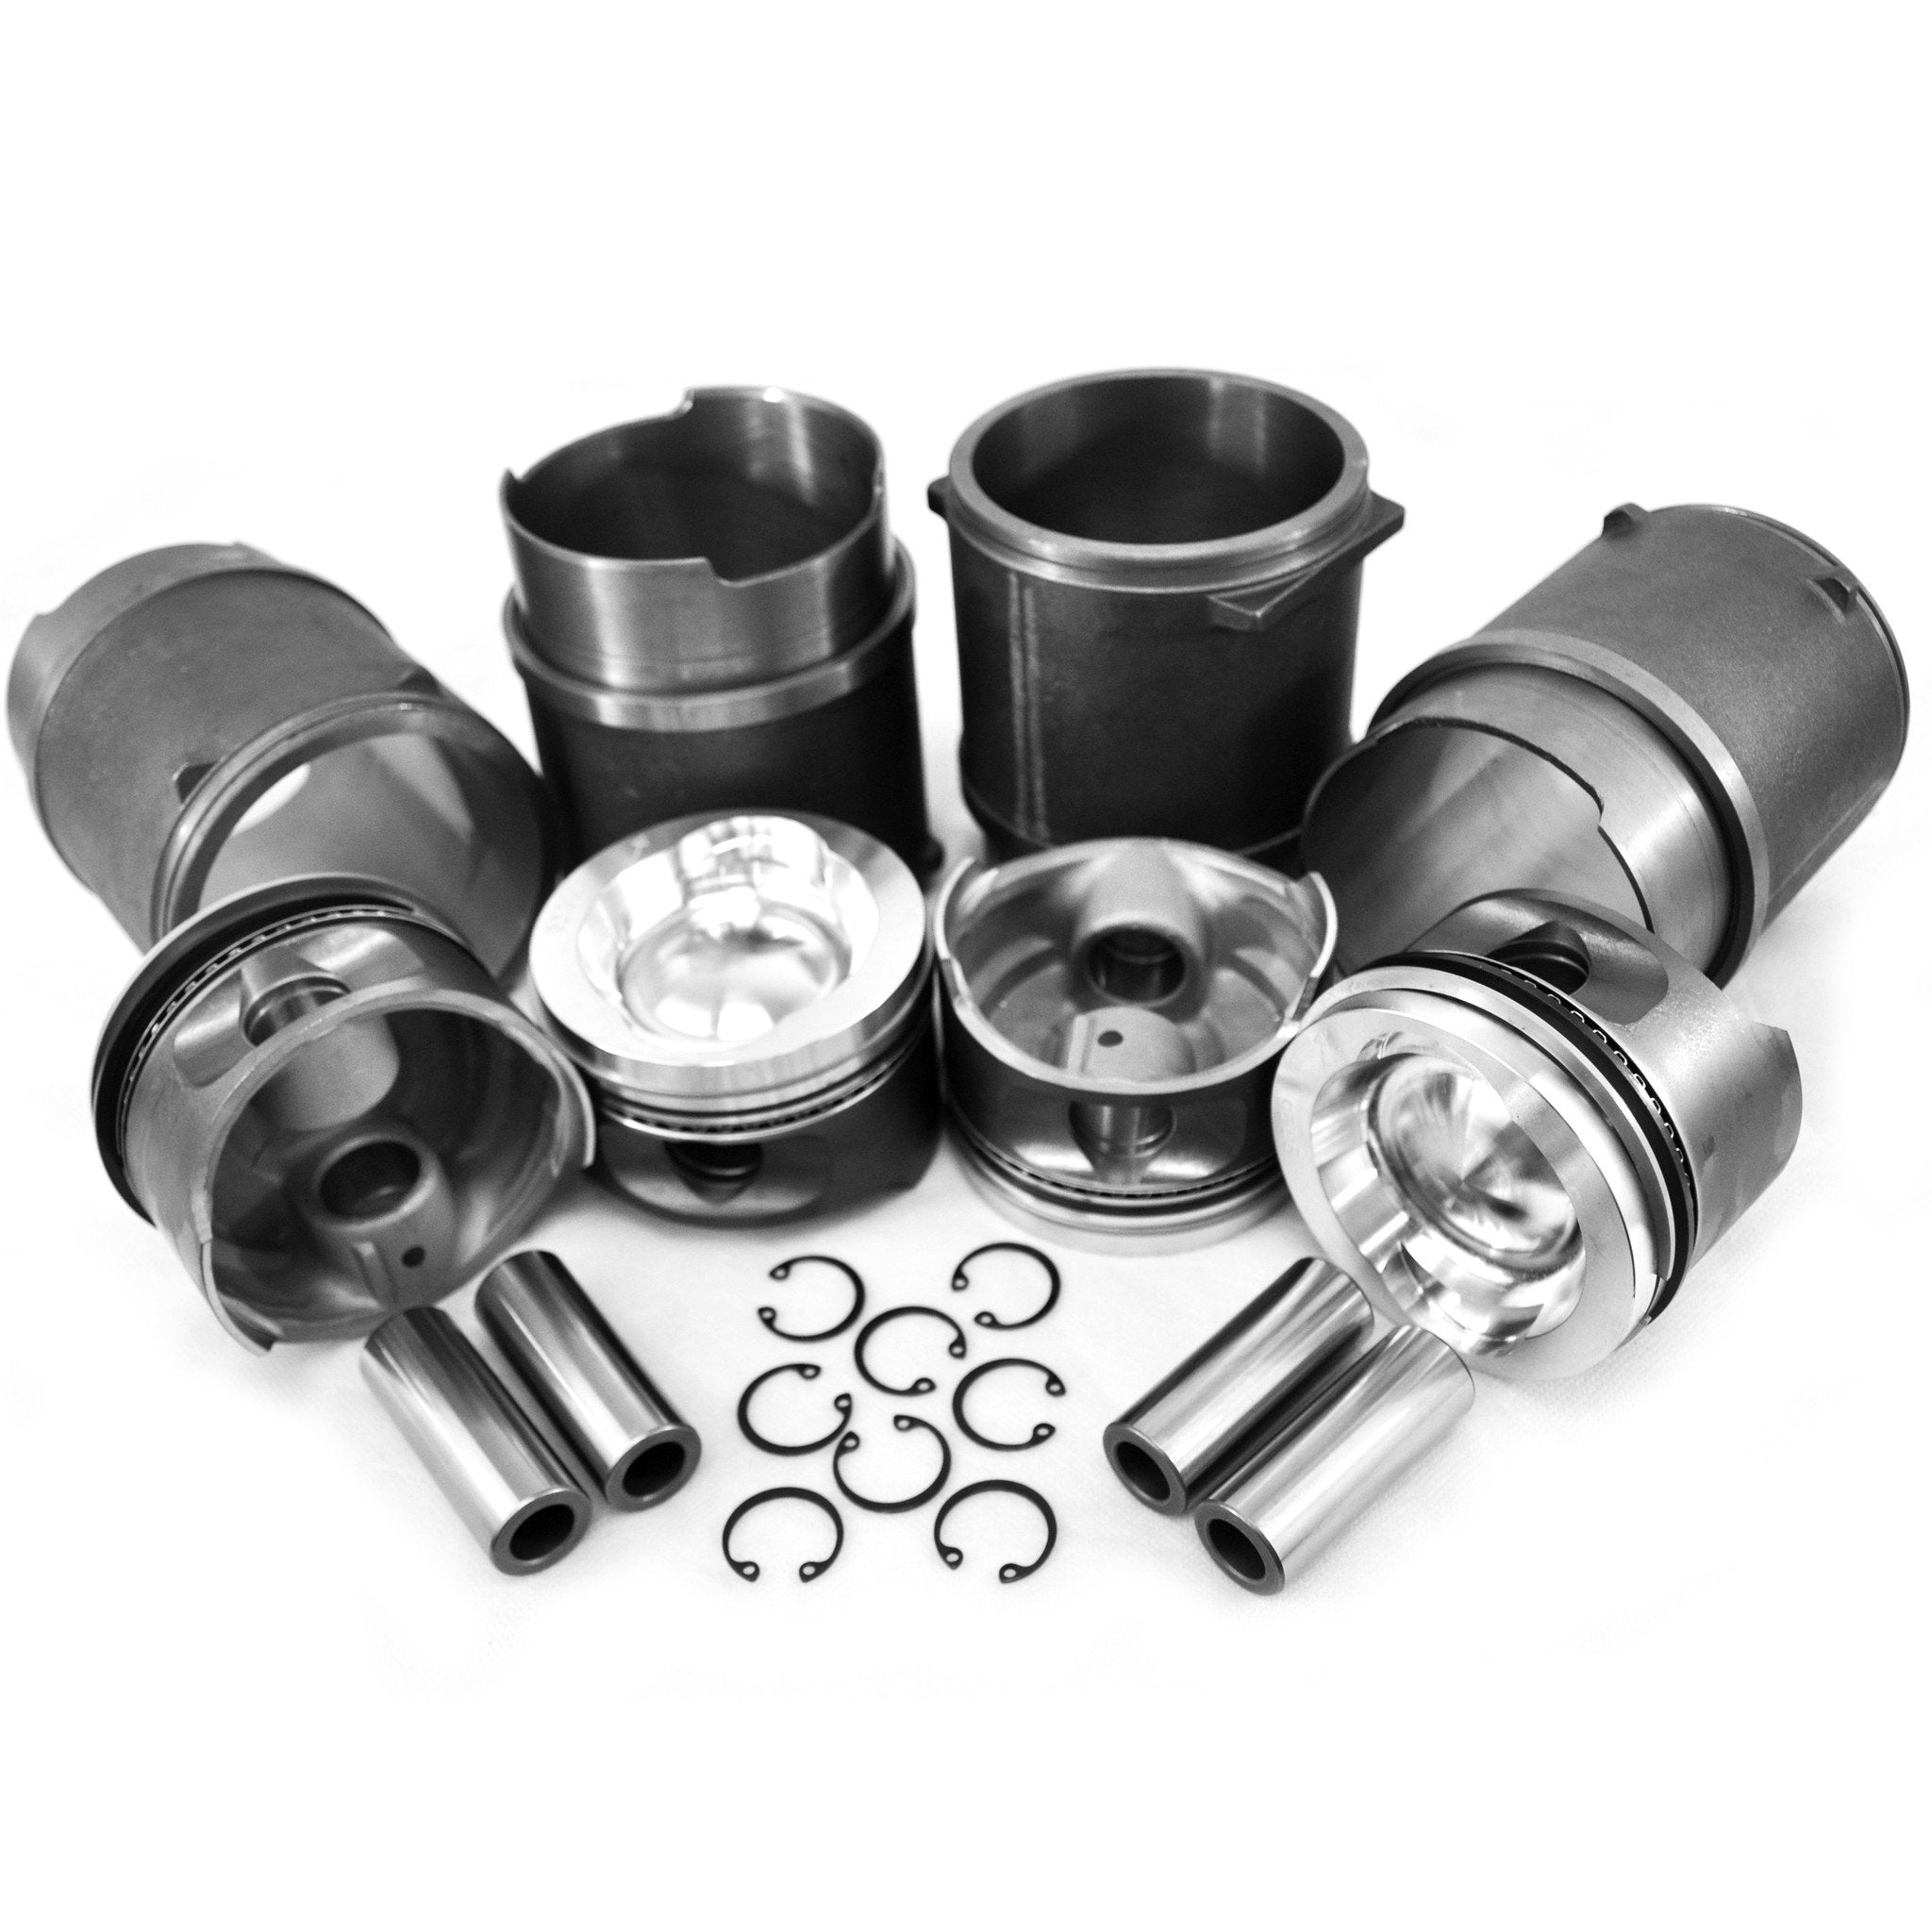 94mm 2100cc Water Cooled Piston & Cylinder Kit